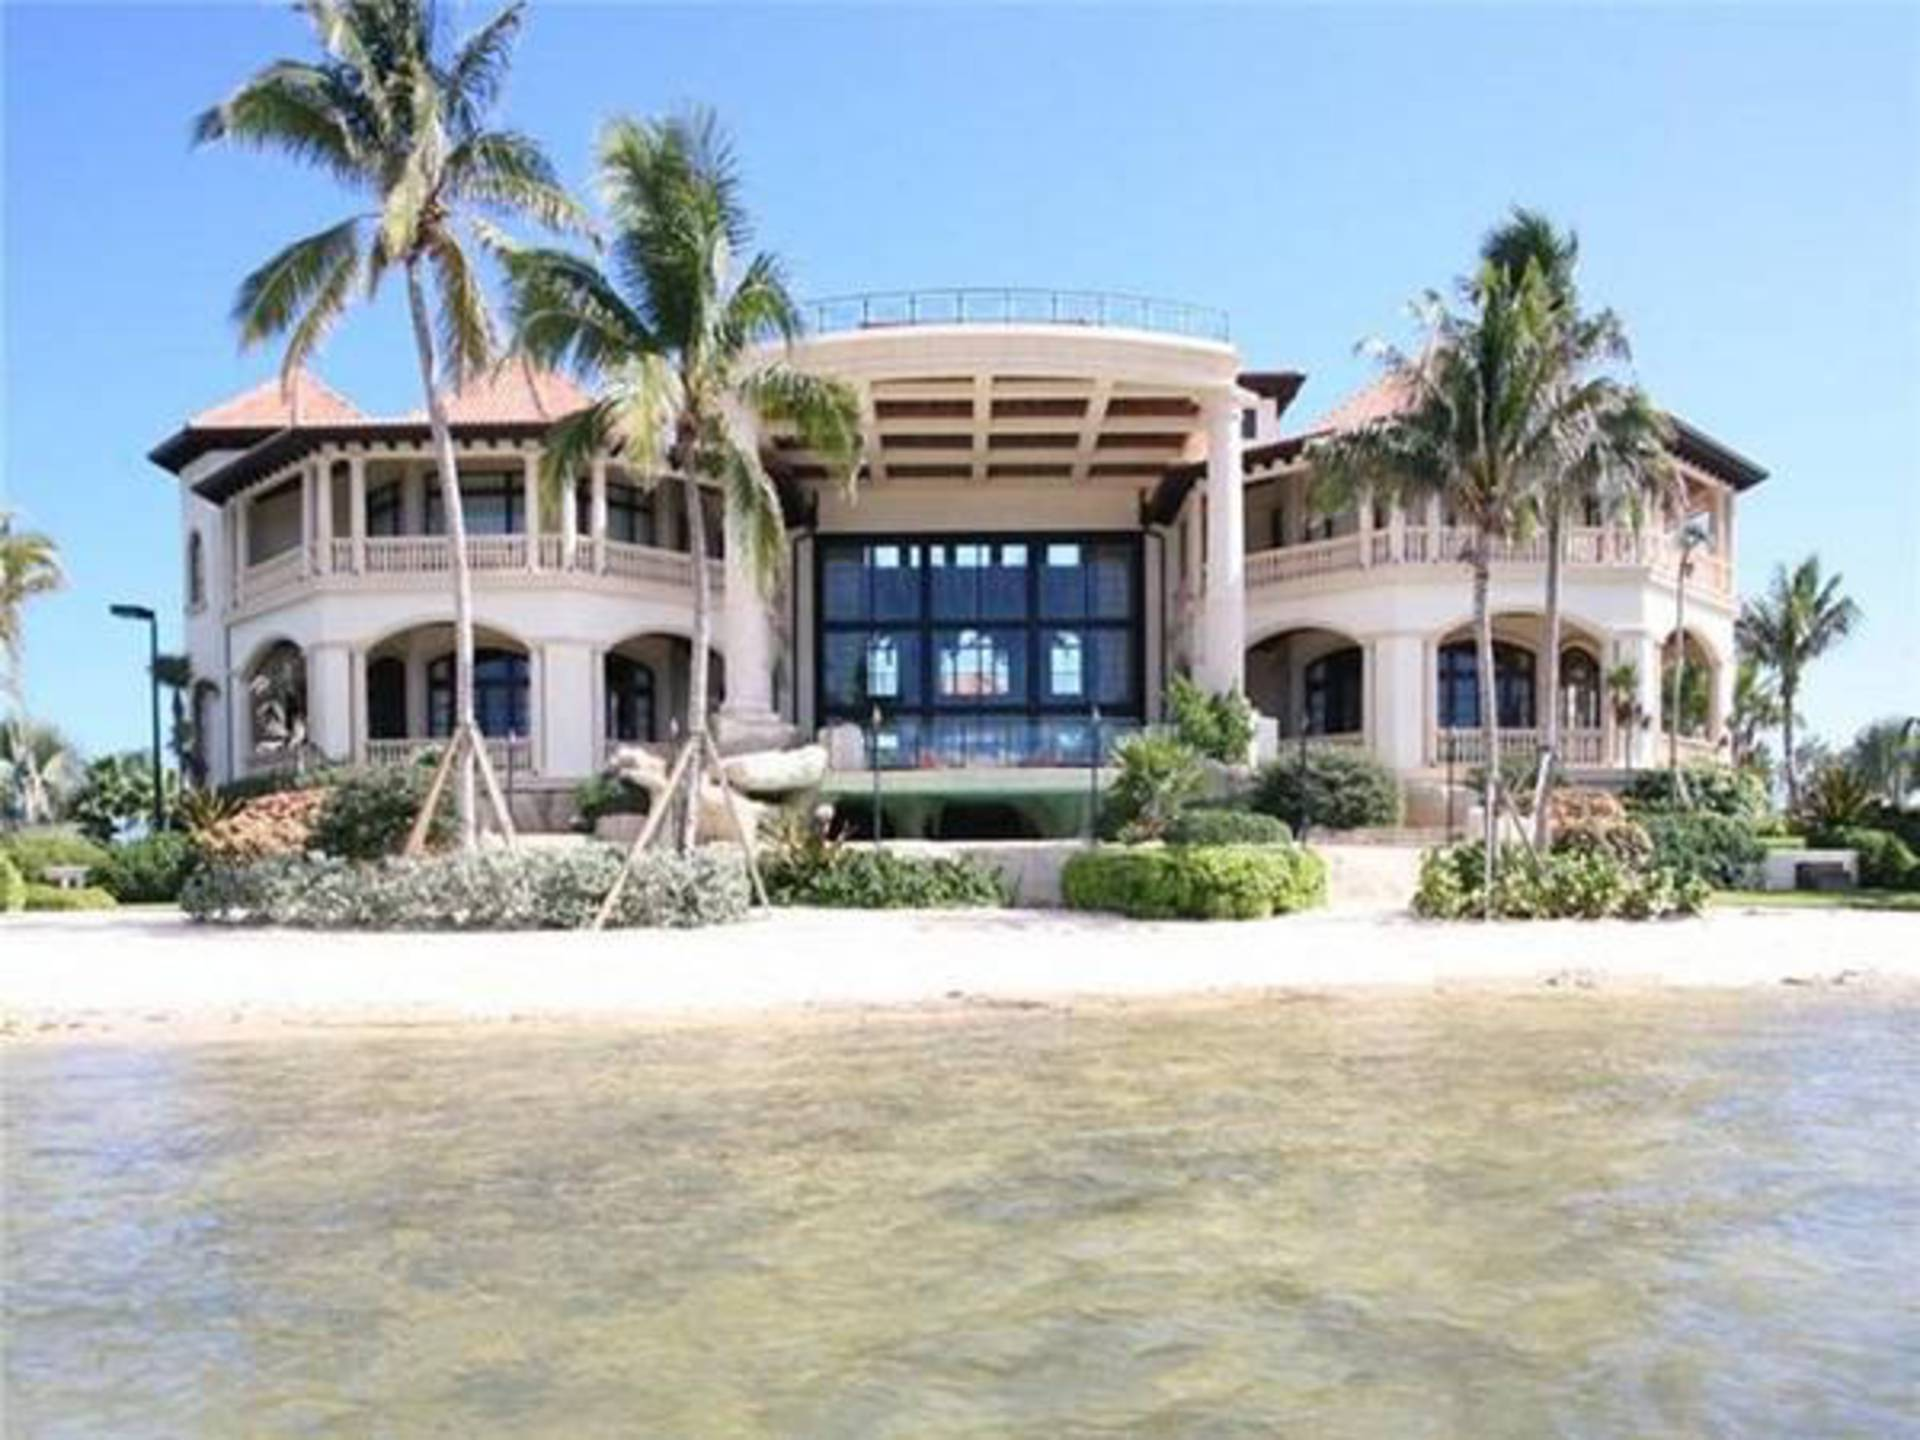 Luxury Mansion In The Cayman Islands Home Reviews